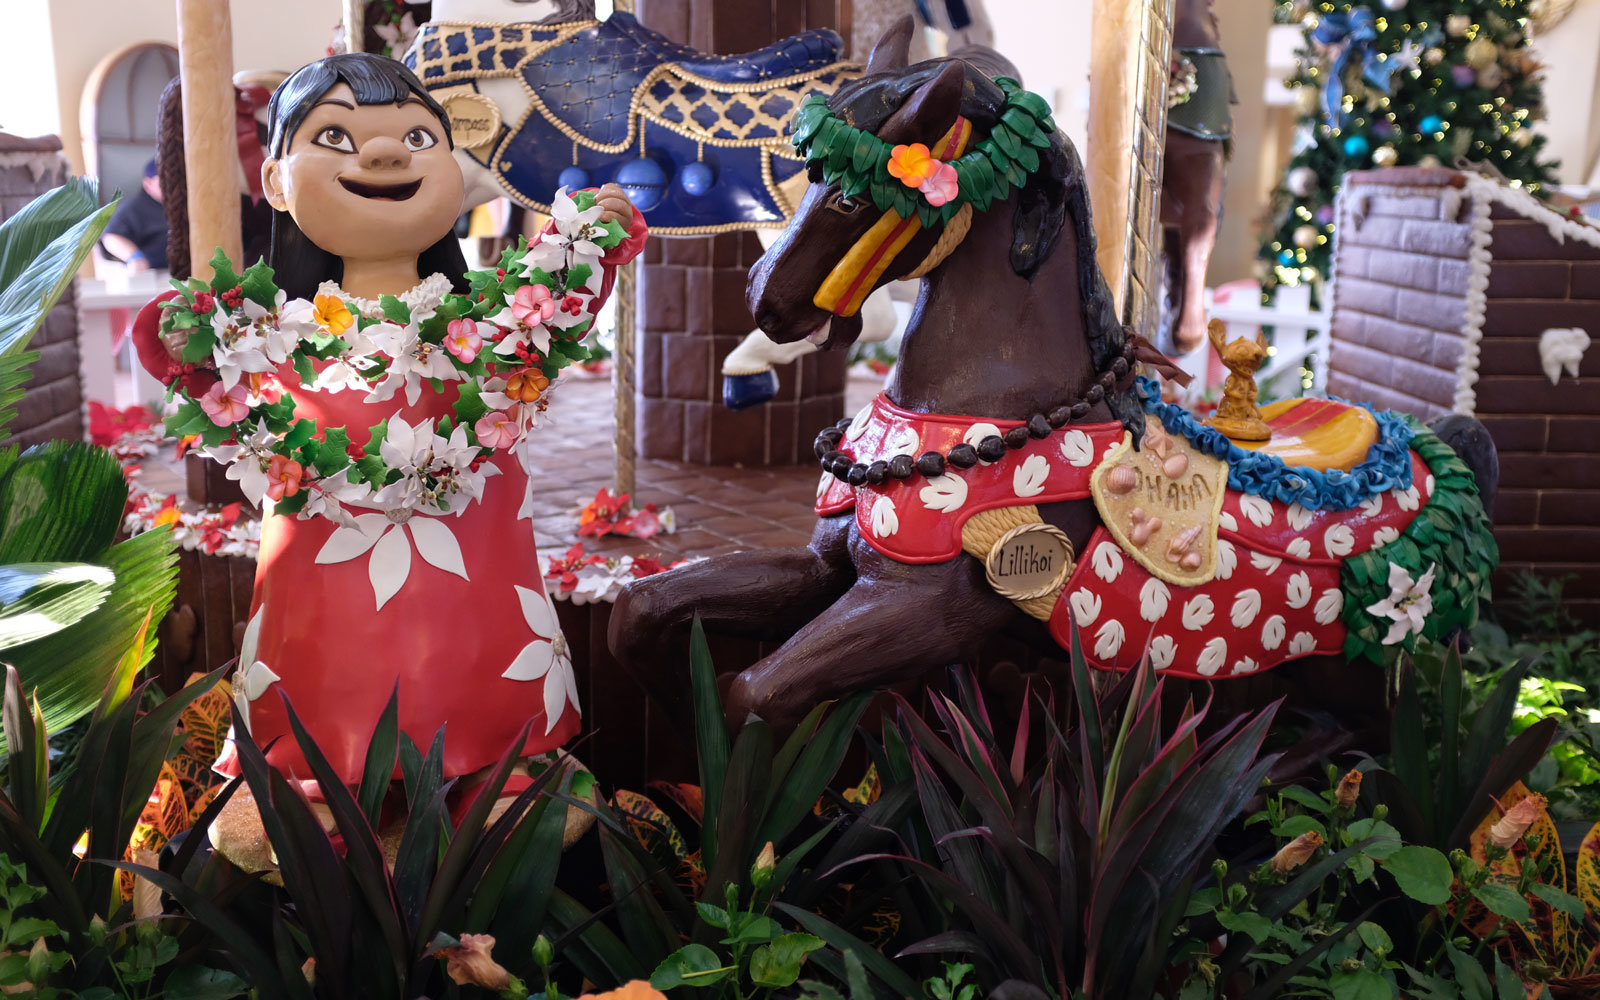 Lilo and Stitch themed decorations